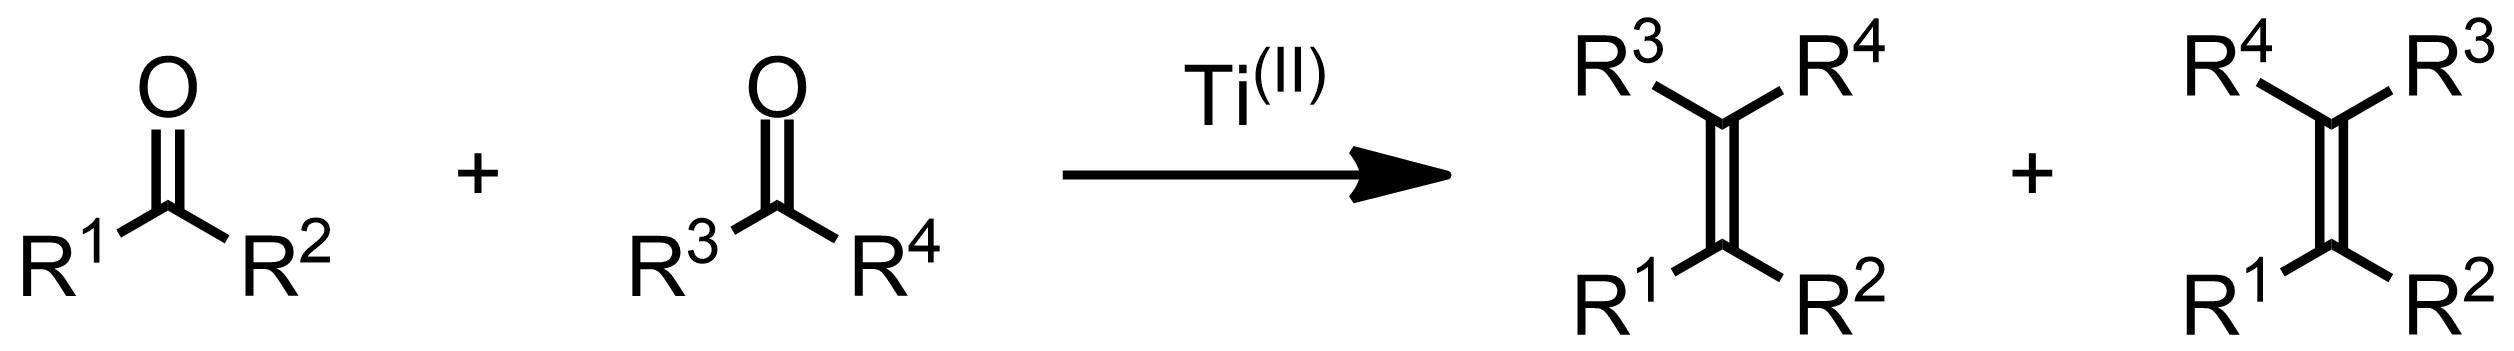 Schematic representation of the McMurry Reaction.